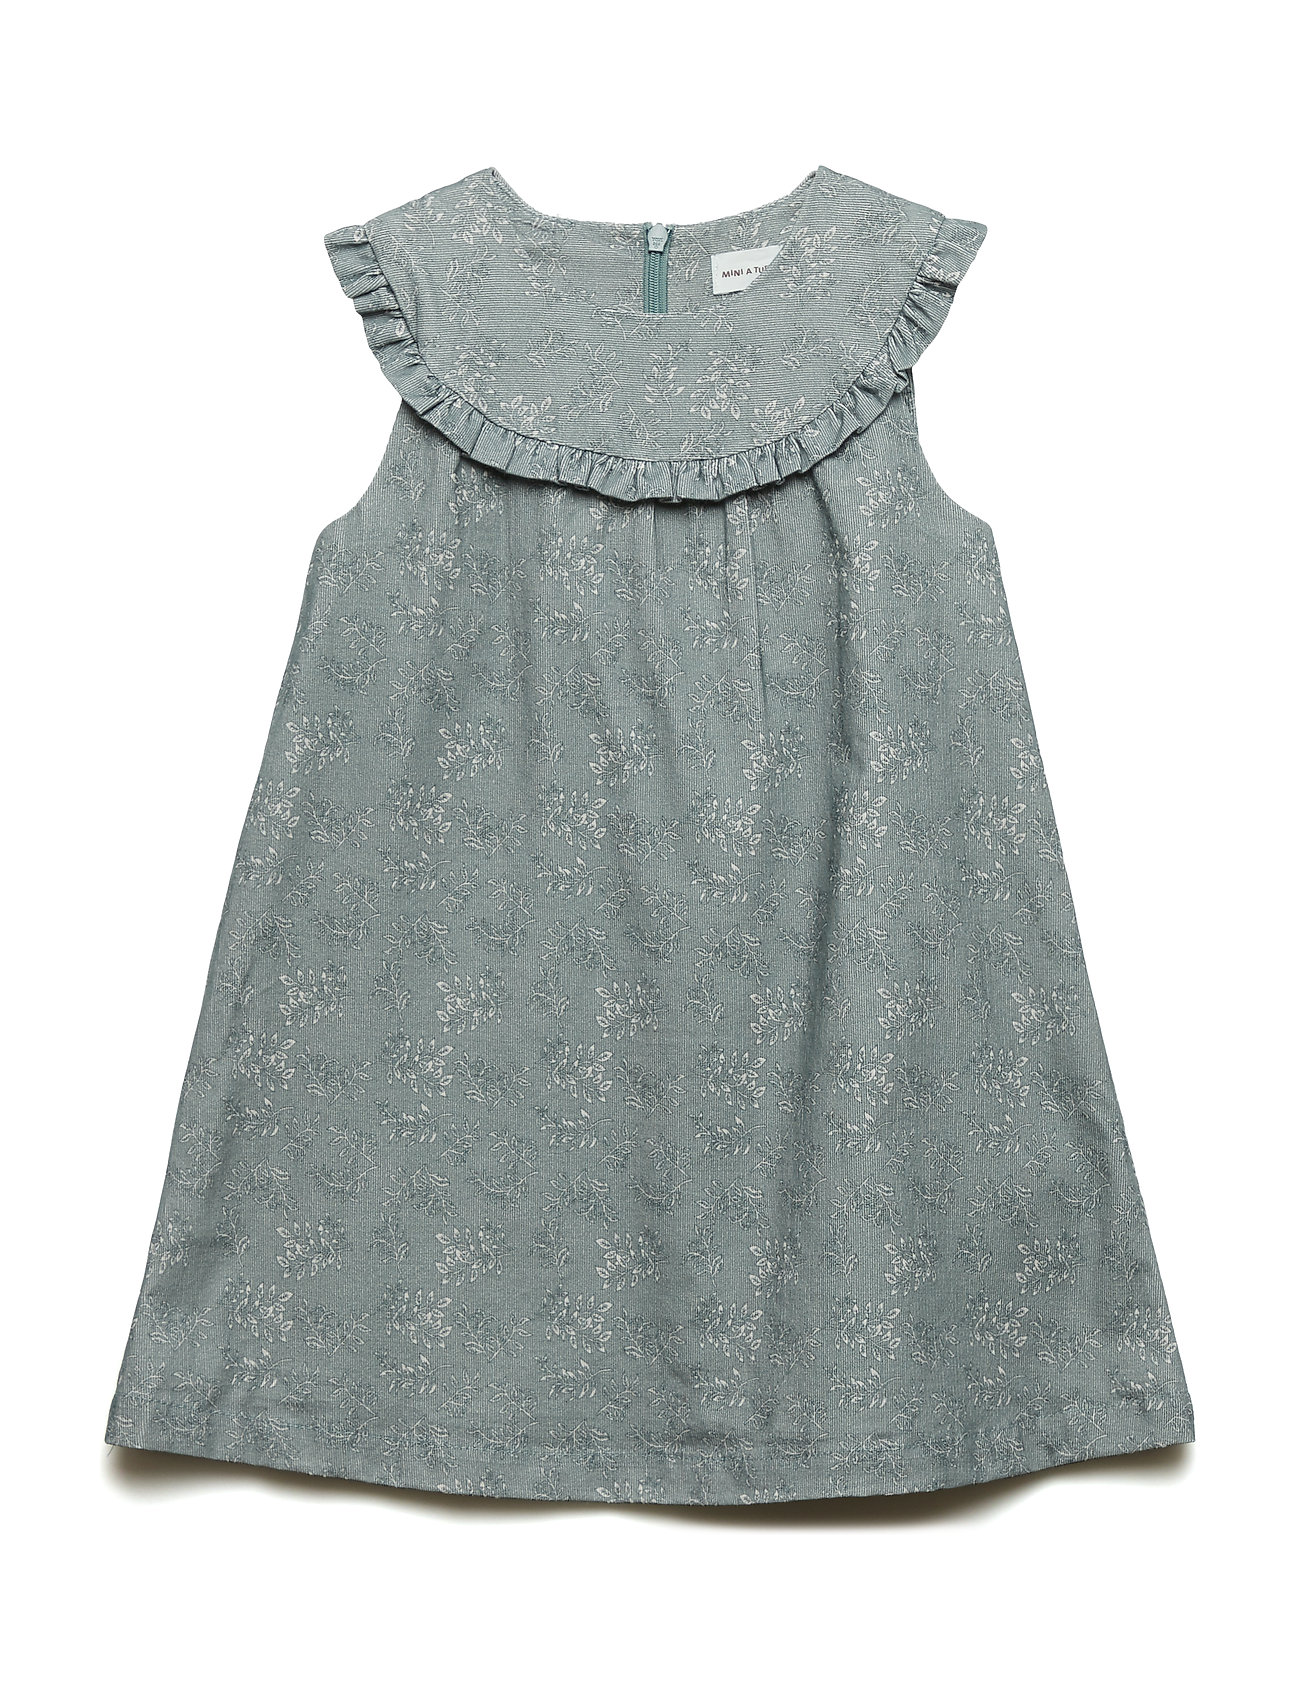 Mini A Ture Stasia dress, M - CHINOIS GREEN